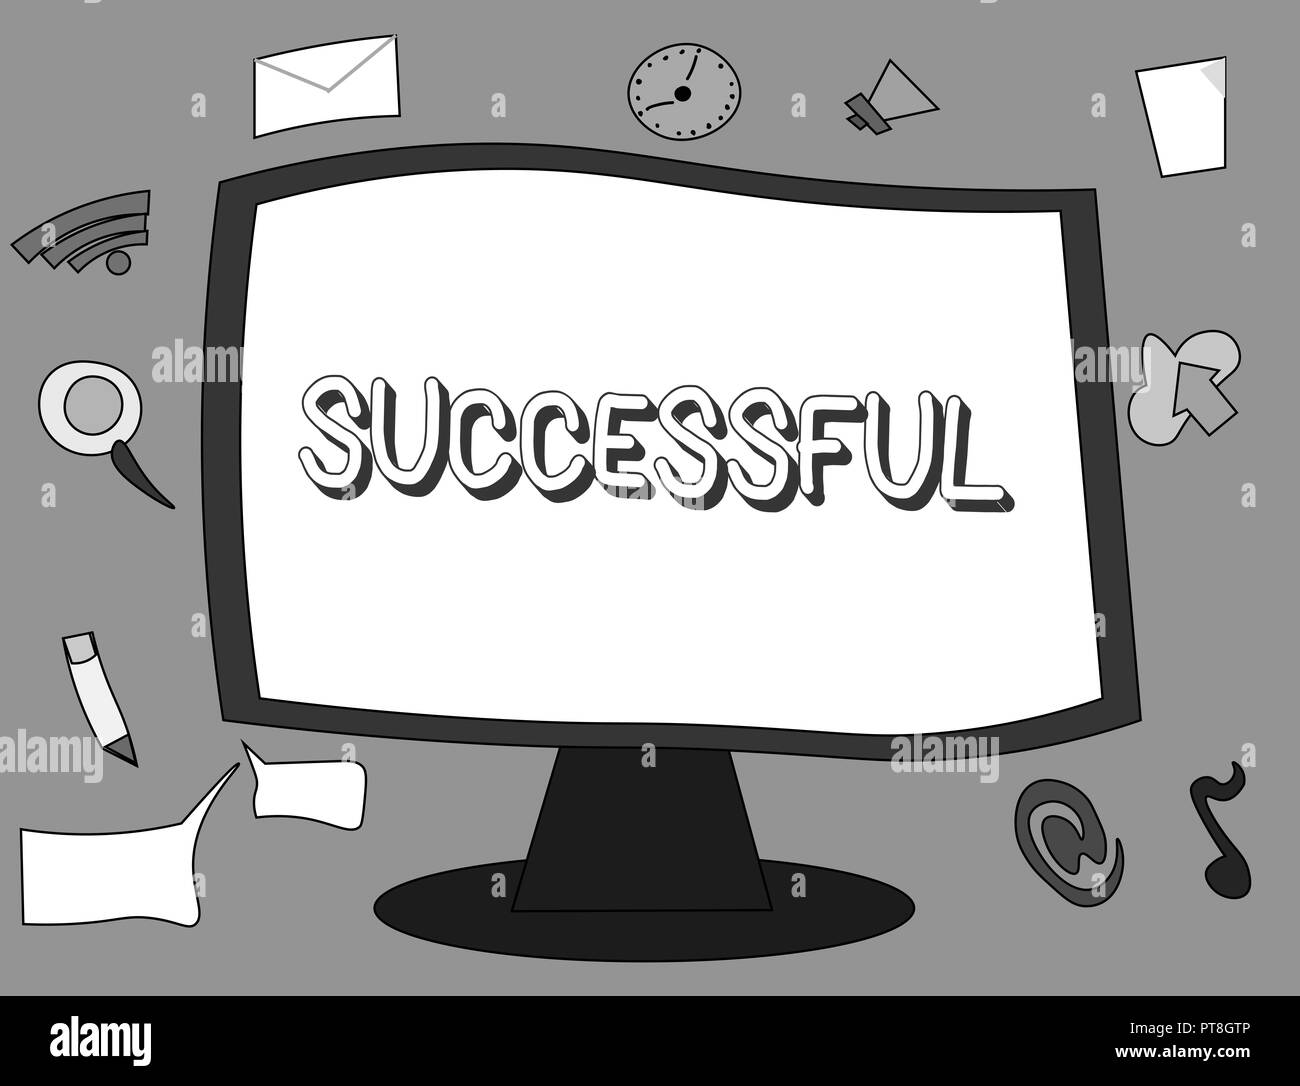 Word writing text Successful. Business concept for Accomplishing a desired aim or result Achieved fame Social status. - Stock Image